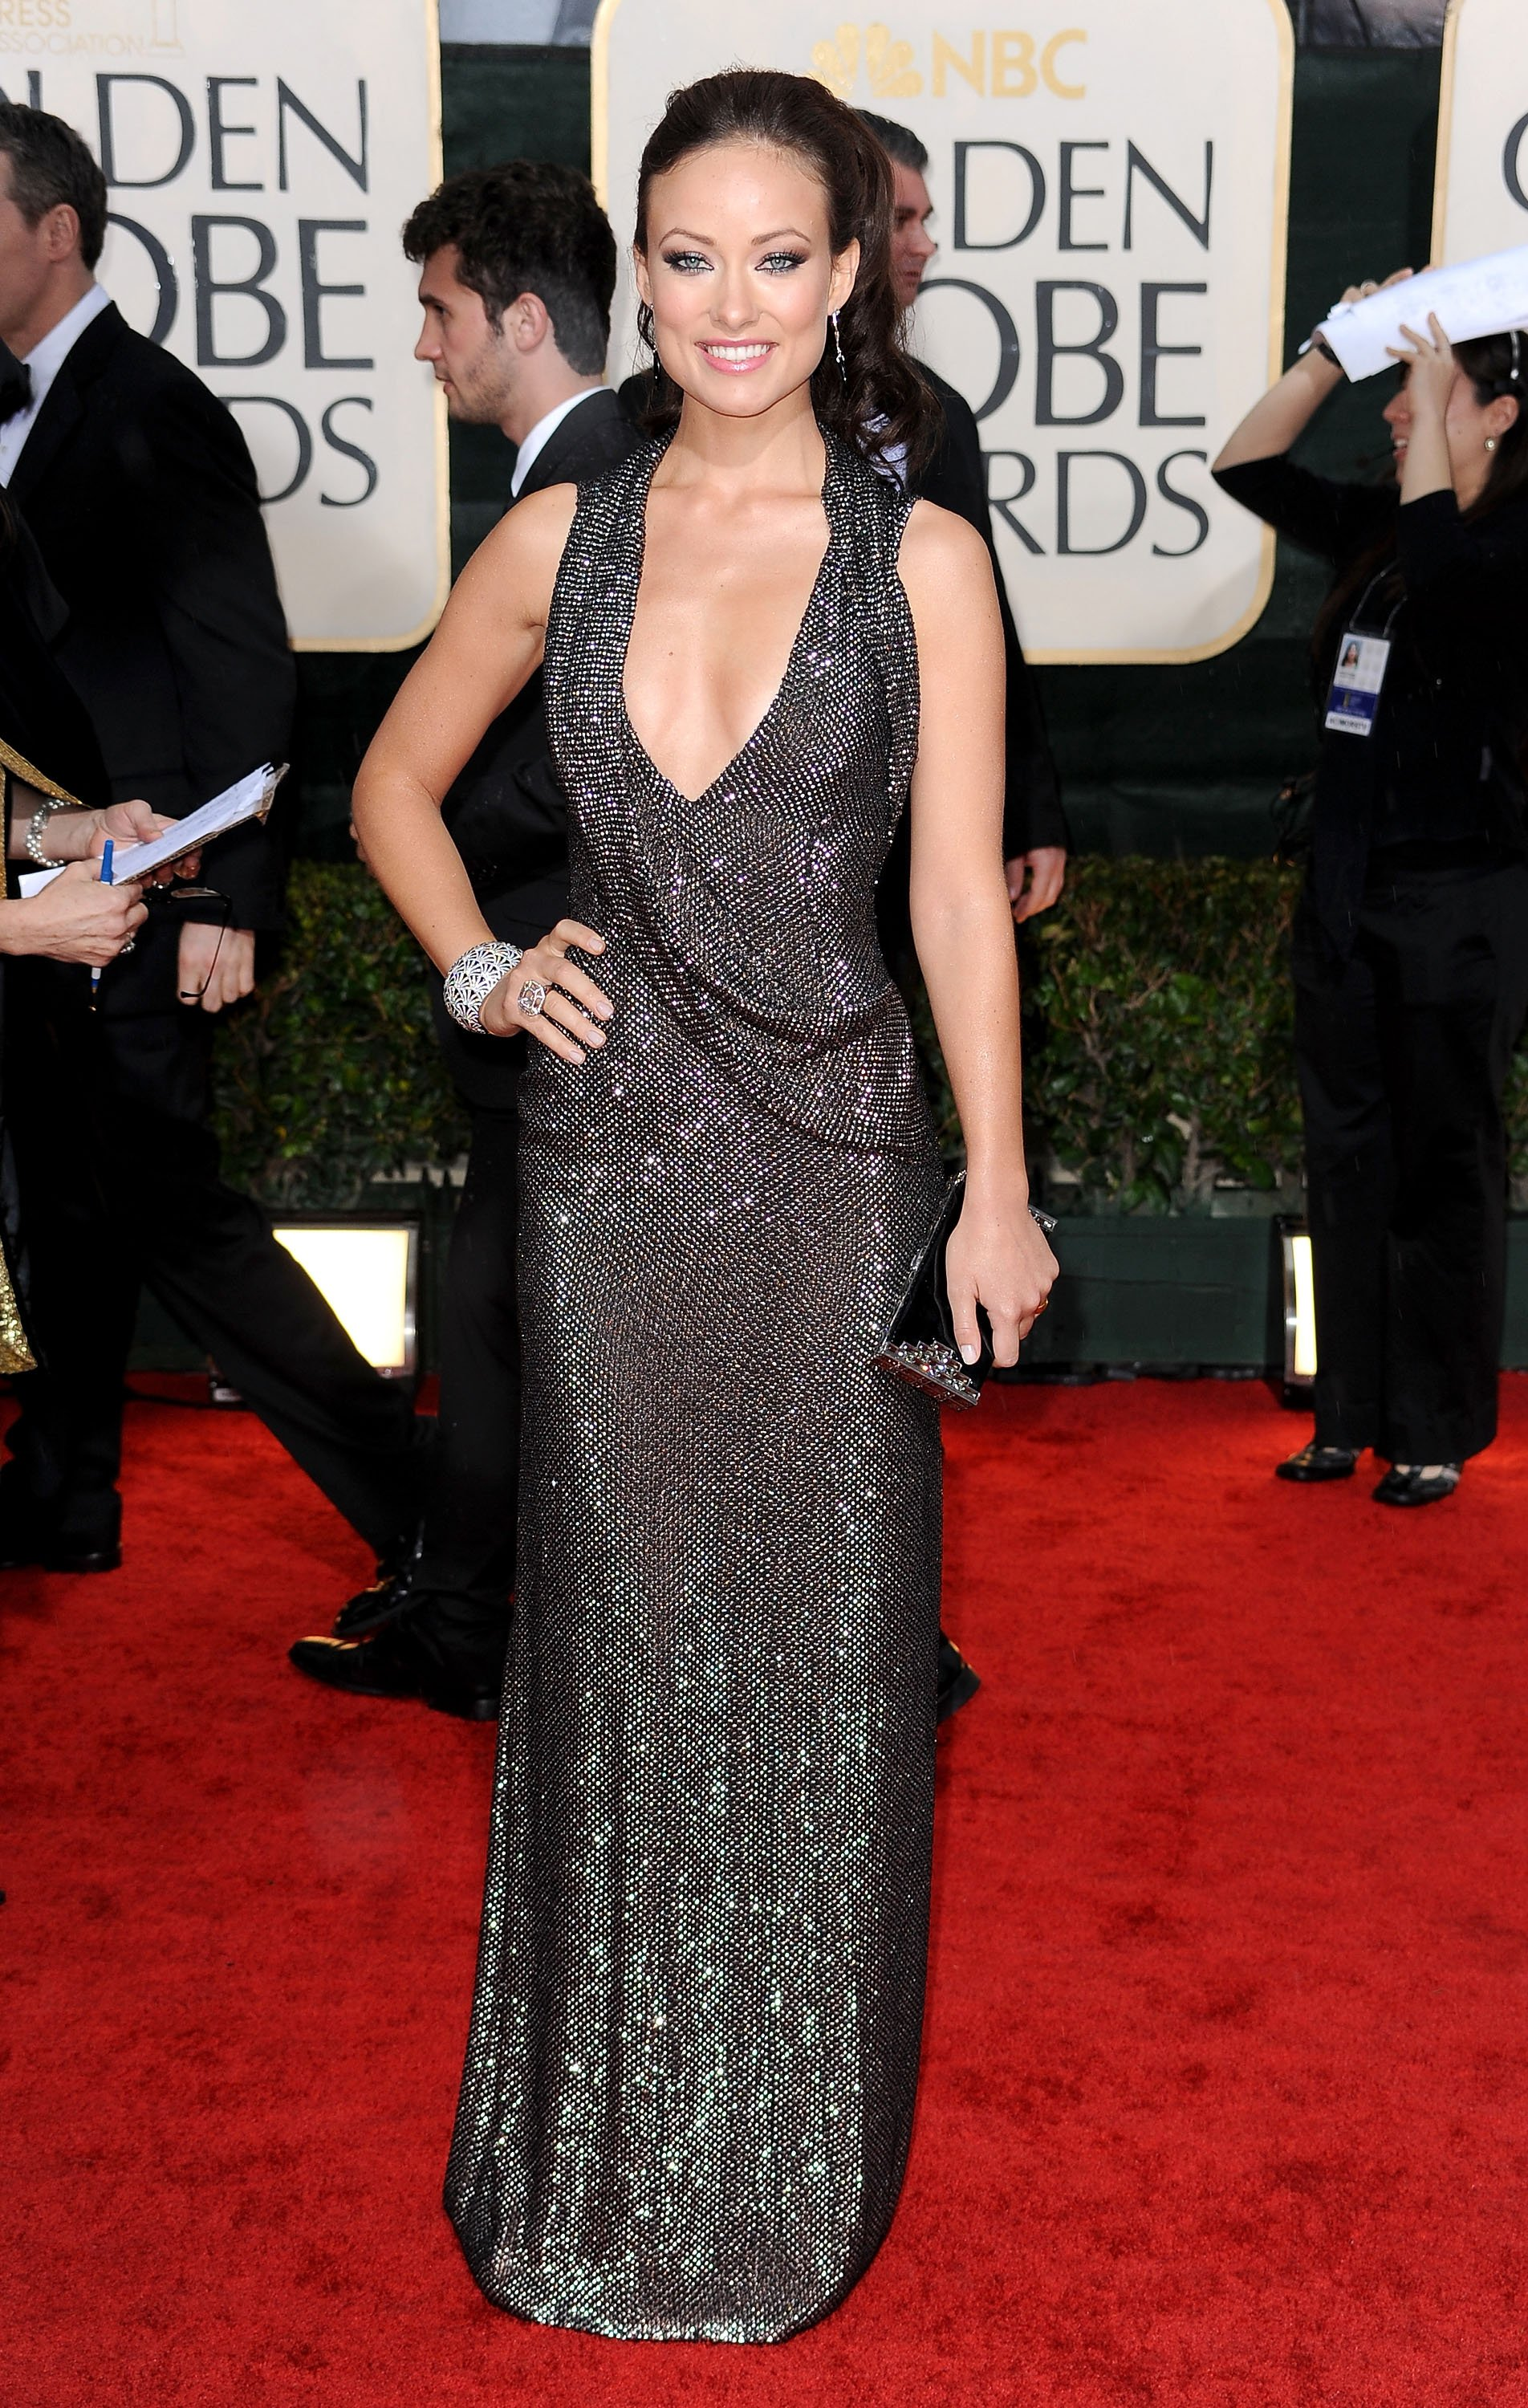 78260_Olivia_Wilde_arrives_at_the_67th_Annual_Golden_Globe_Awards-4_122_38lo.jpg